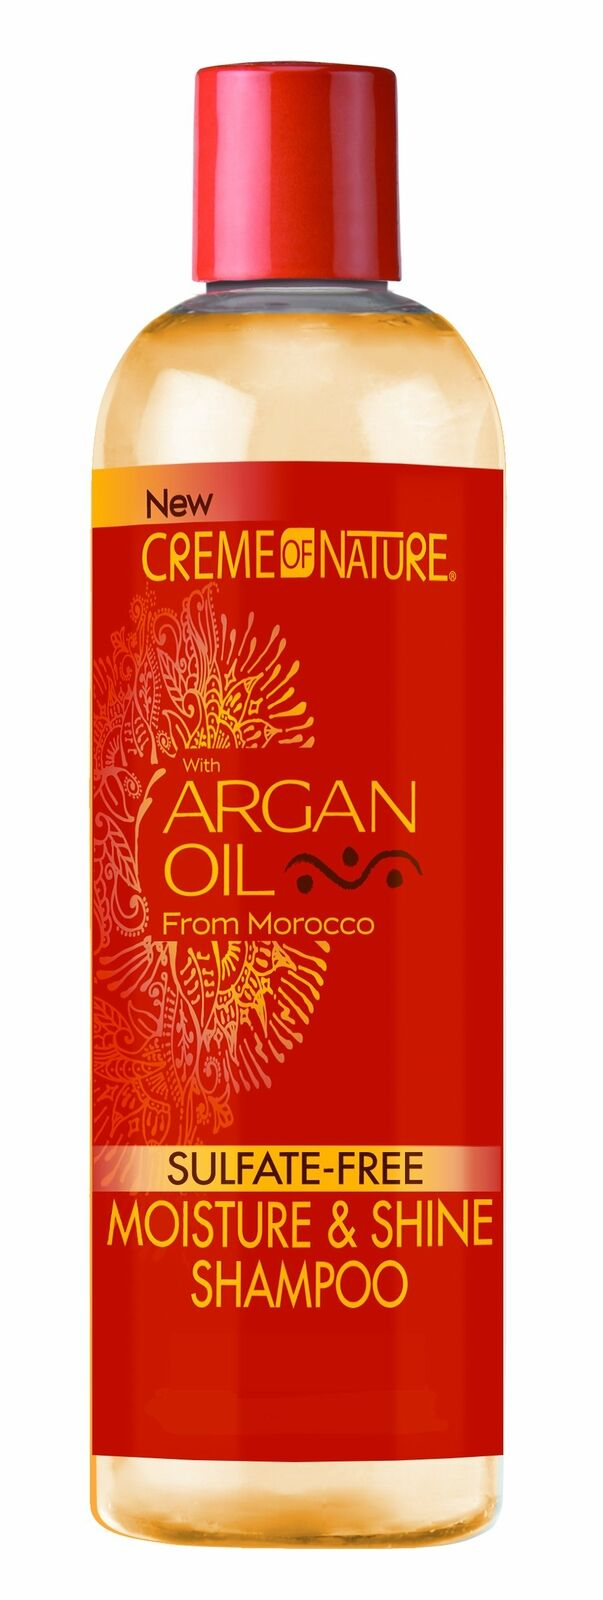 Creme of Nature Moisture & Shine Shampoo with Argan Oil 12 oz.